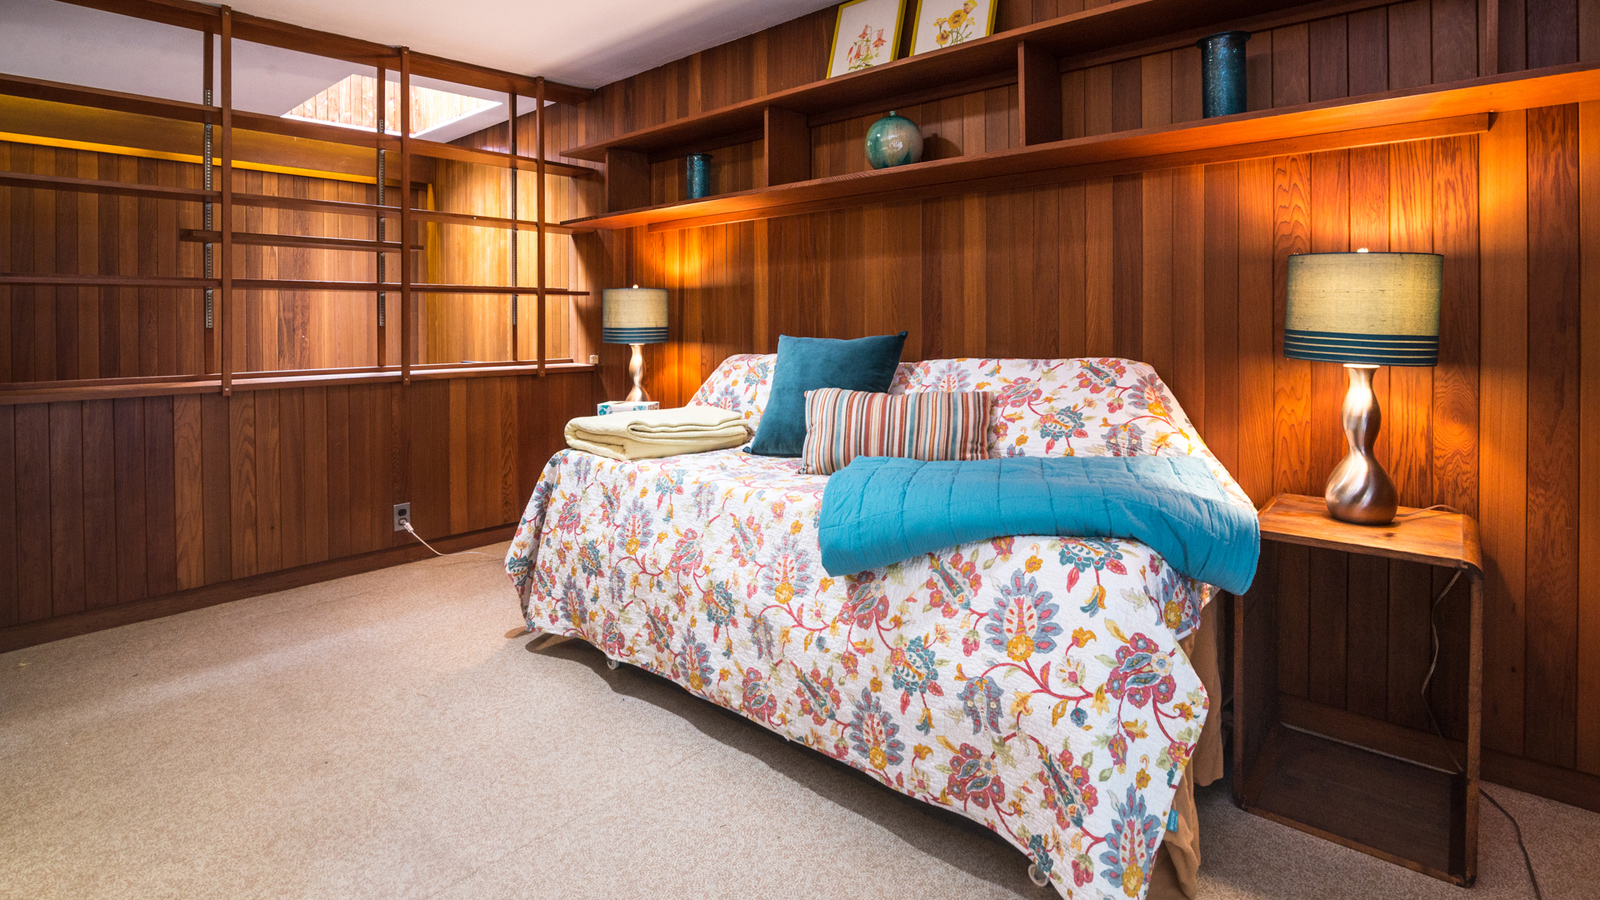 Bedrooms at The Tivadar and Dorothy Balogh House have original custom built midcentury cabinetry - this second room doubles as a study and reading space